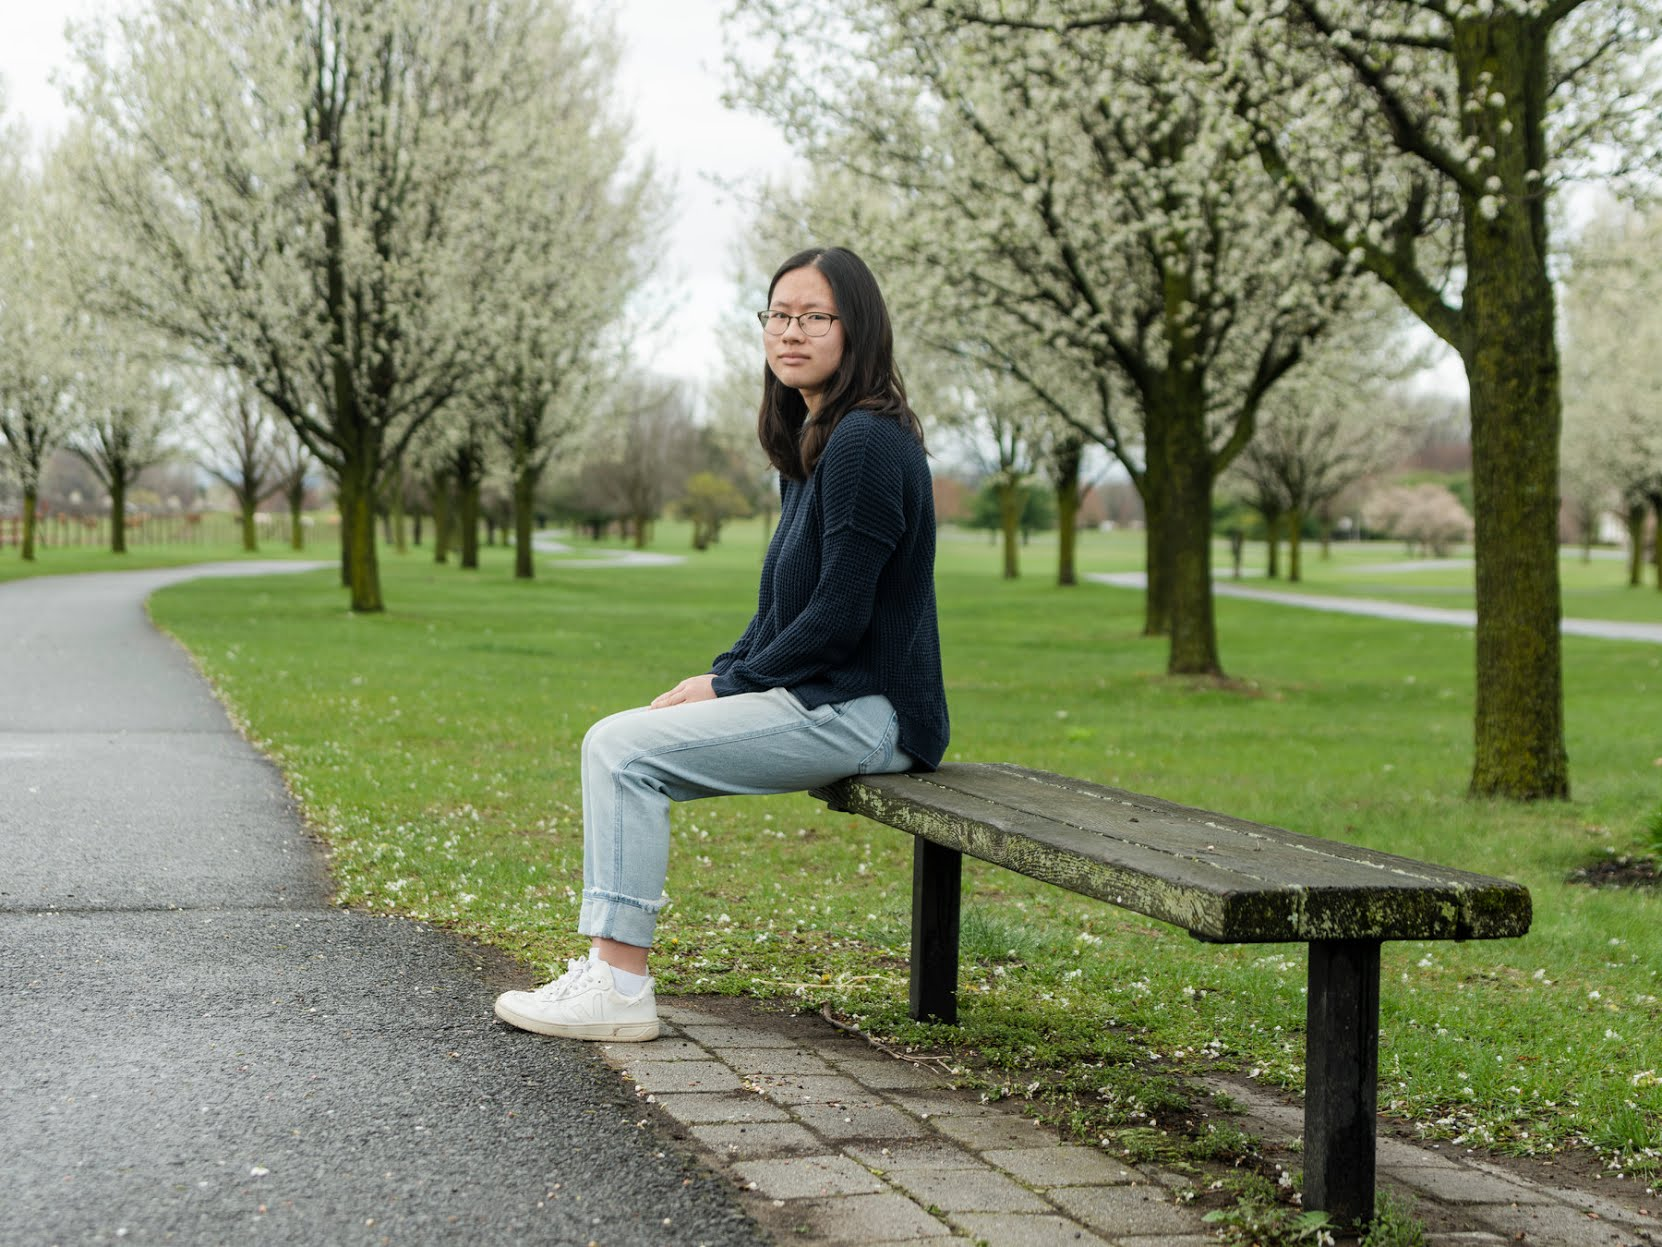 Tiffany Tang of Albany, N.Y., was choosing from among four schools that had accepted her. This week, three more that had put her on the wait list got in touch.